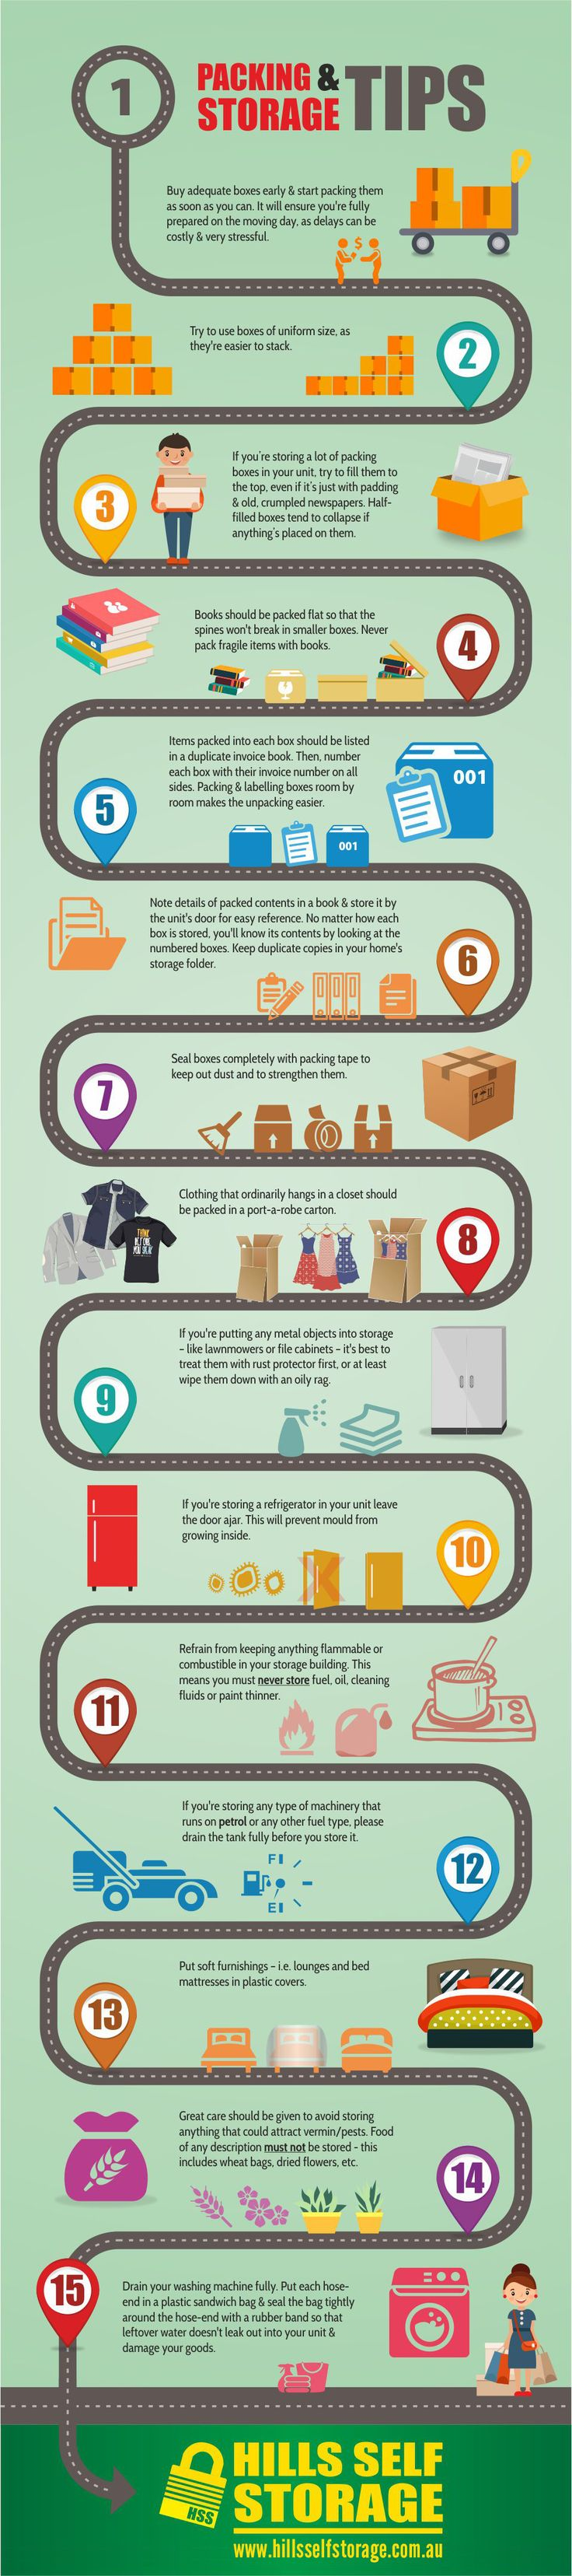 Essential tips for Packing & Storage